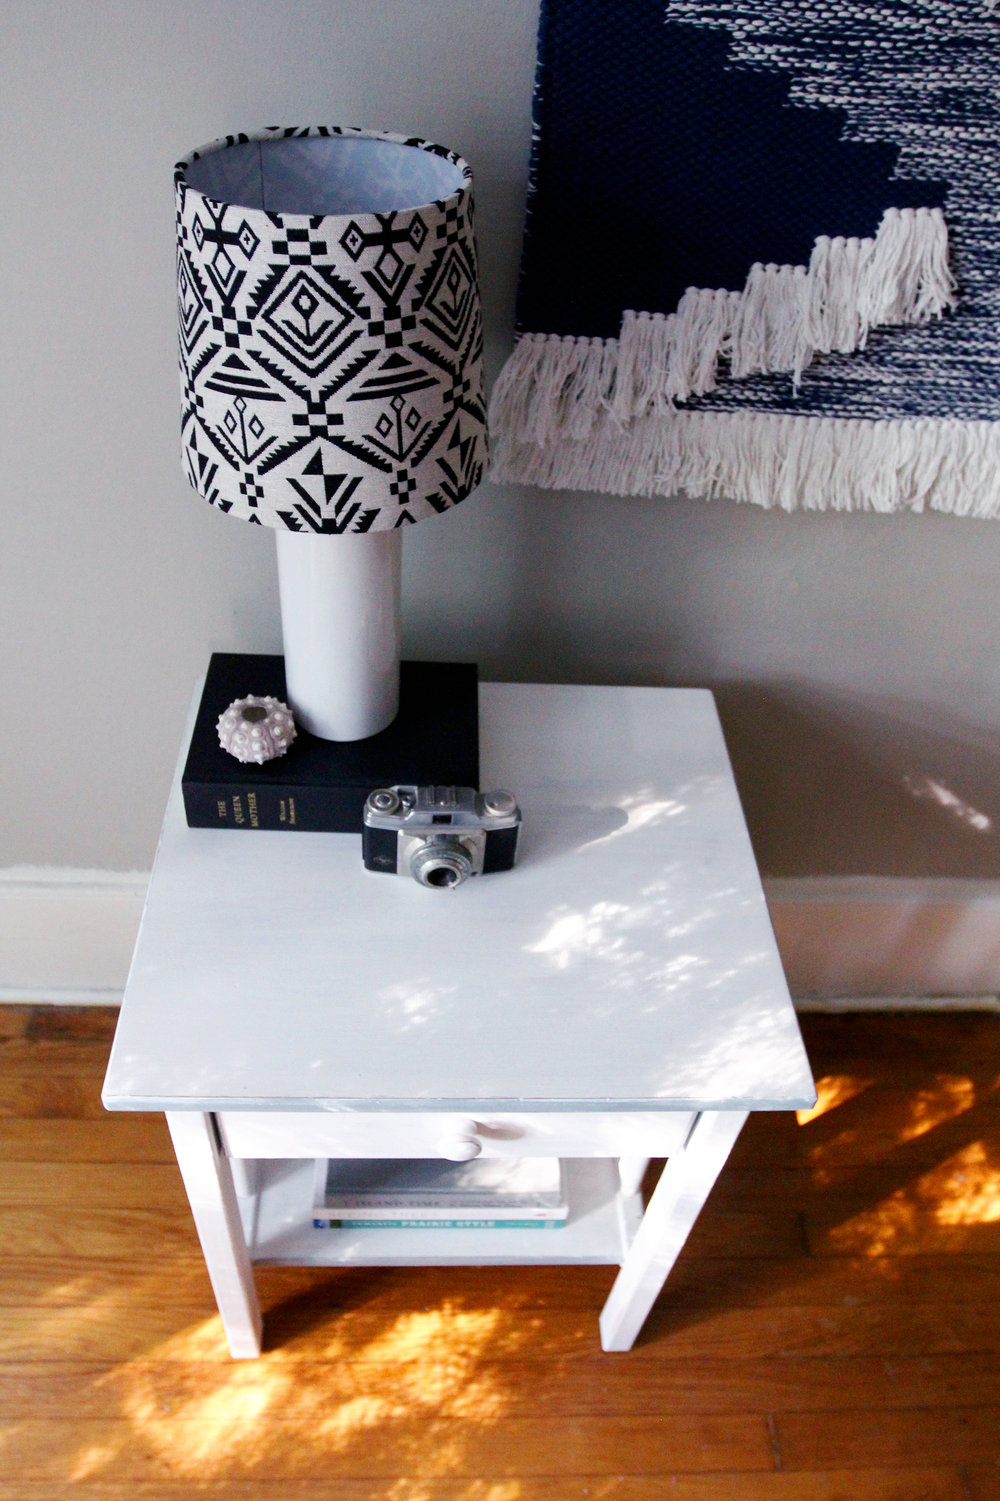 jo-torrijos-a-simpler-design-annie-sloan-pure-white-gray-trim-nightstand-atlanta-painted-furniture-2.jpg